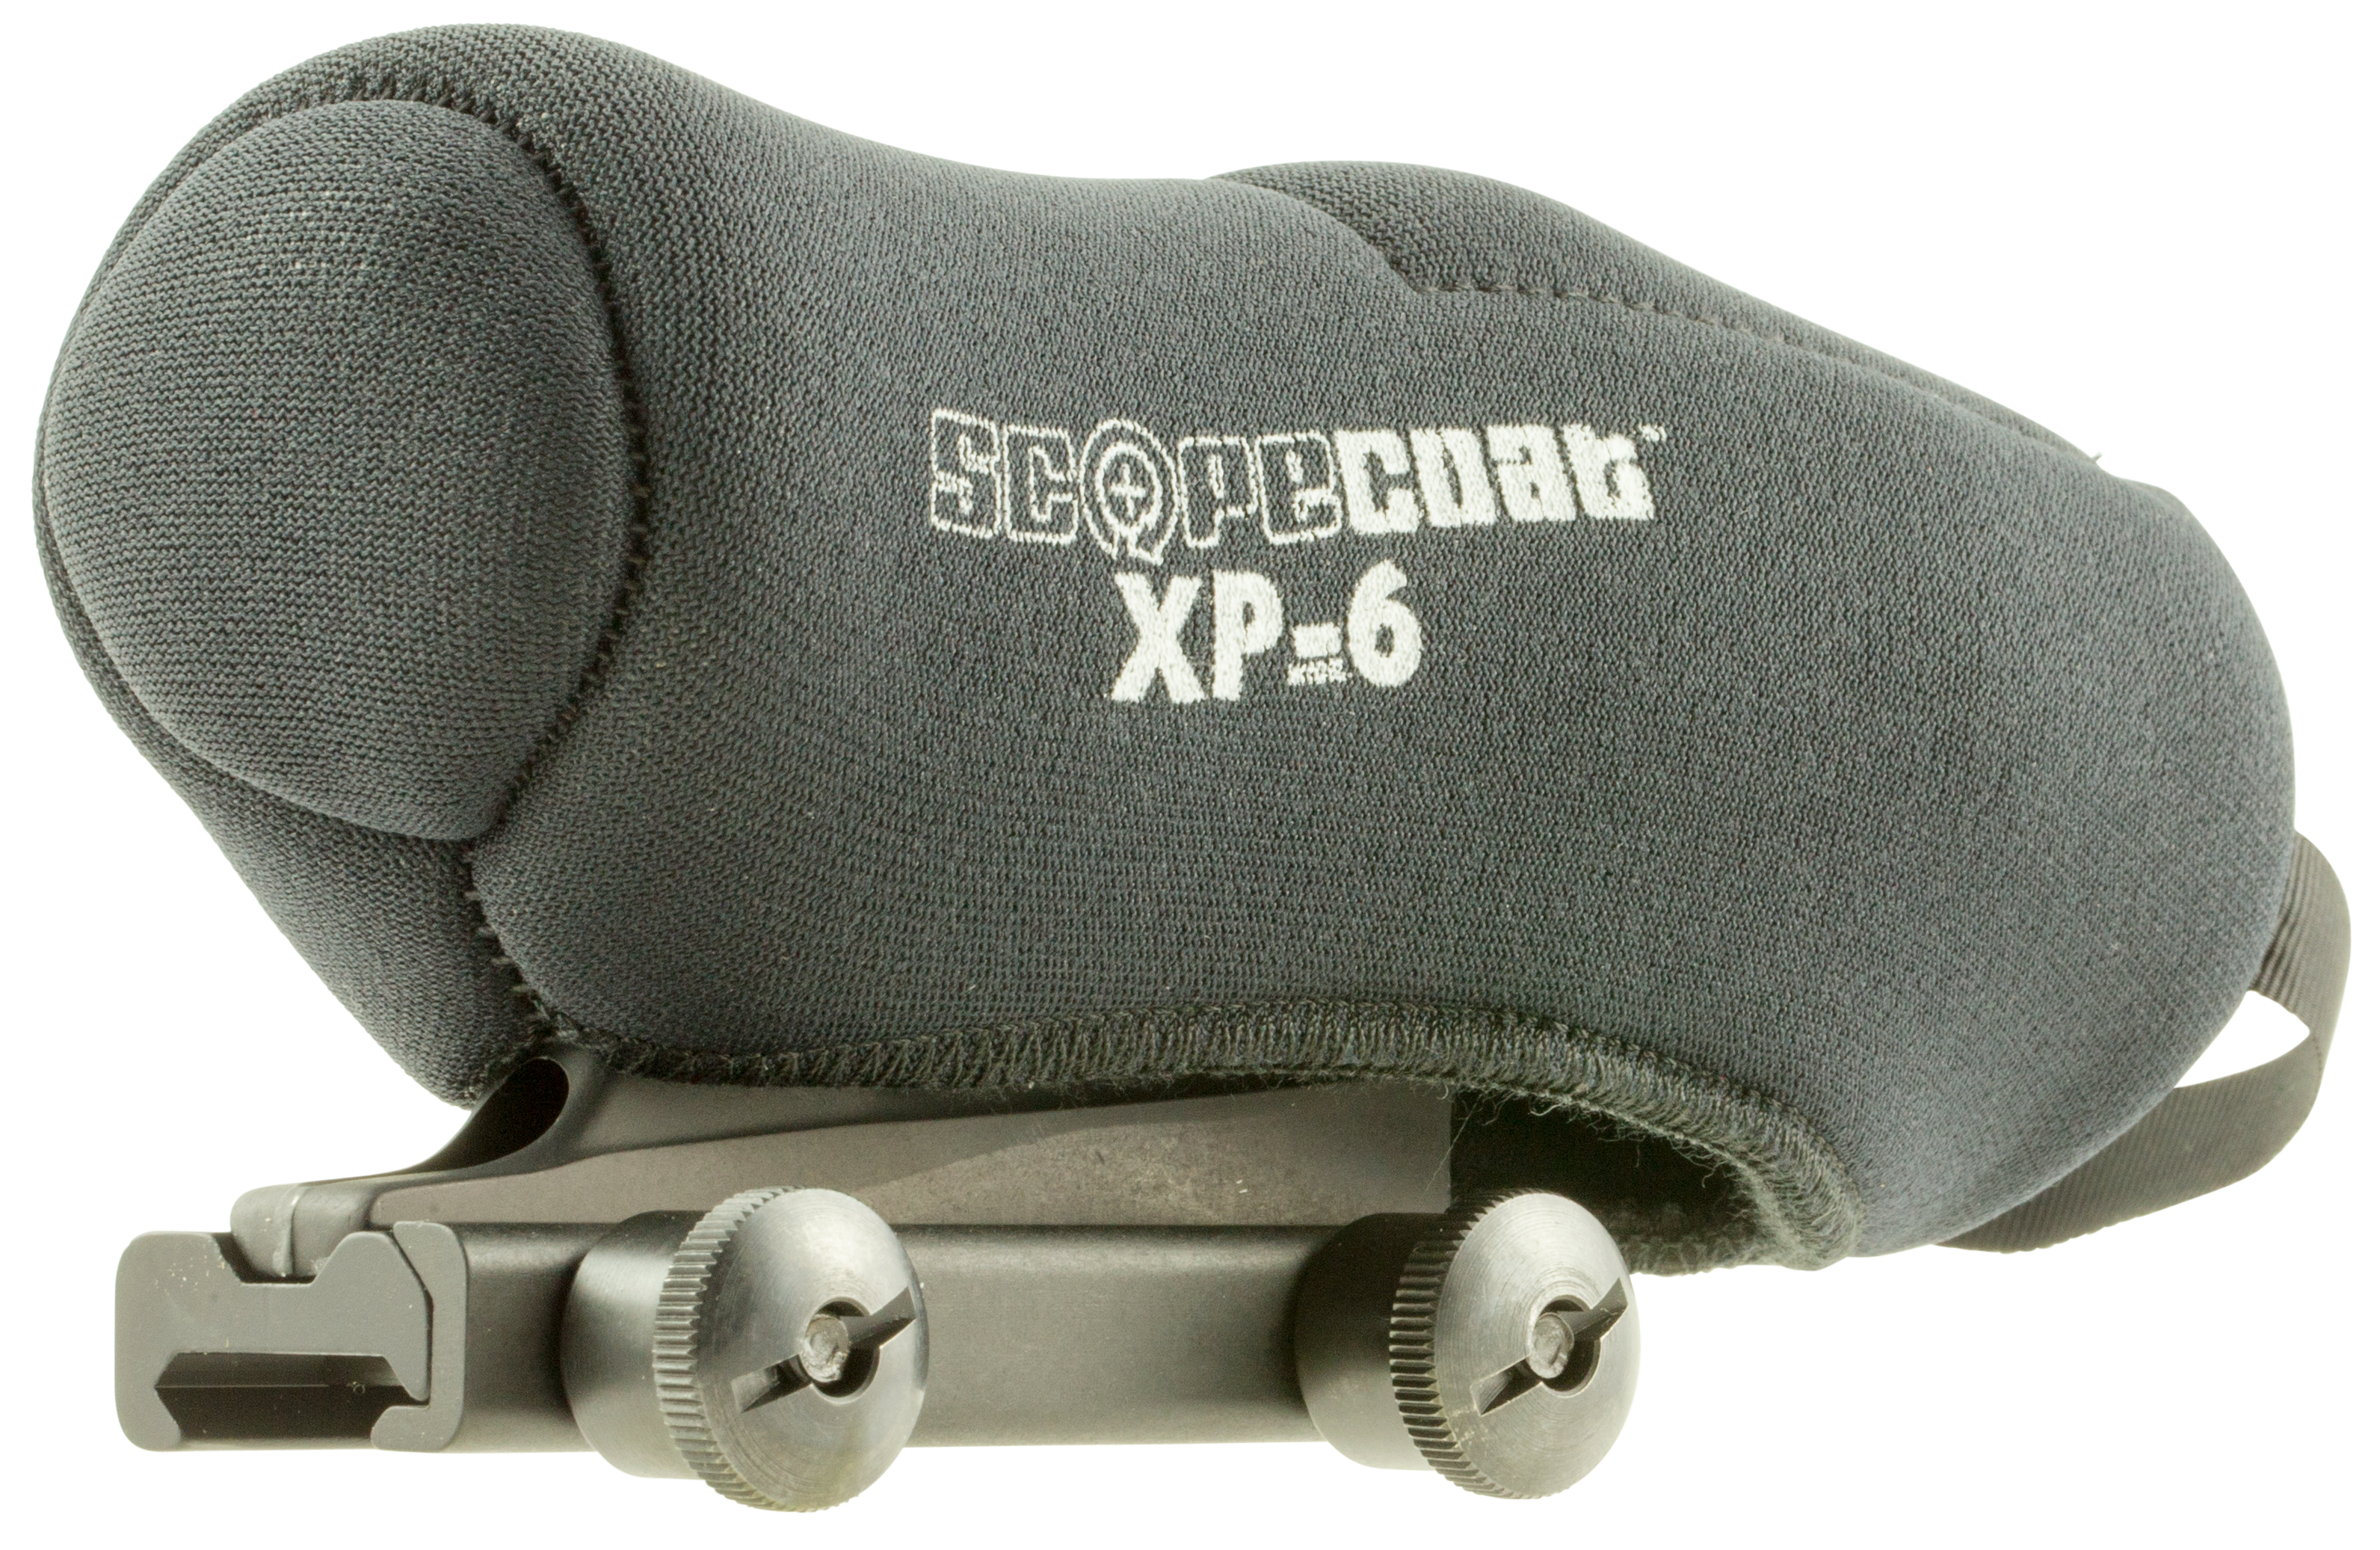 Sentry 12HE03BK Scopecoat Holographic/Electronic Scope Cover 5.8